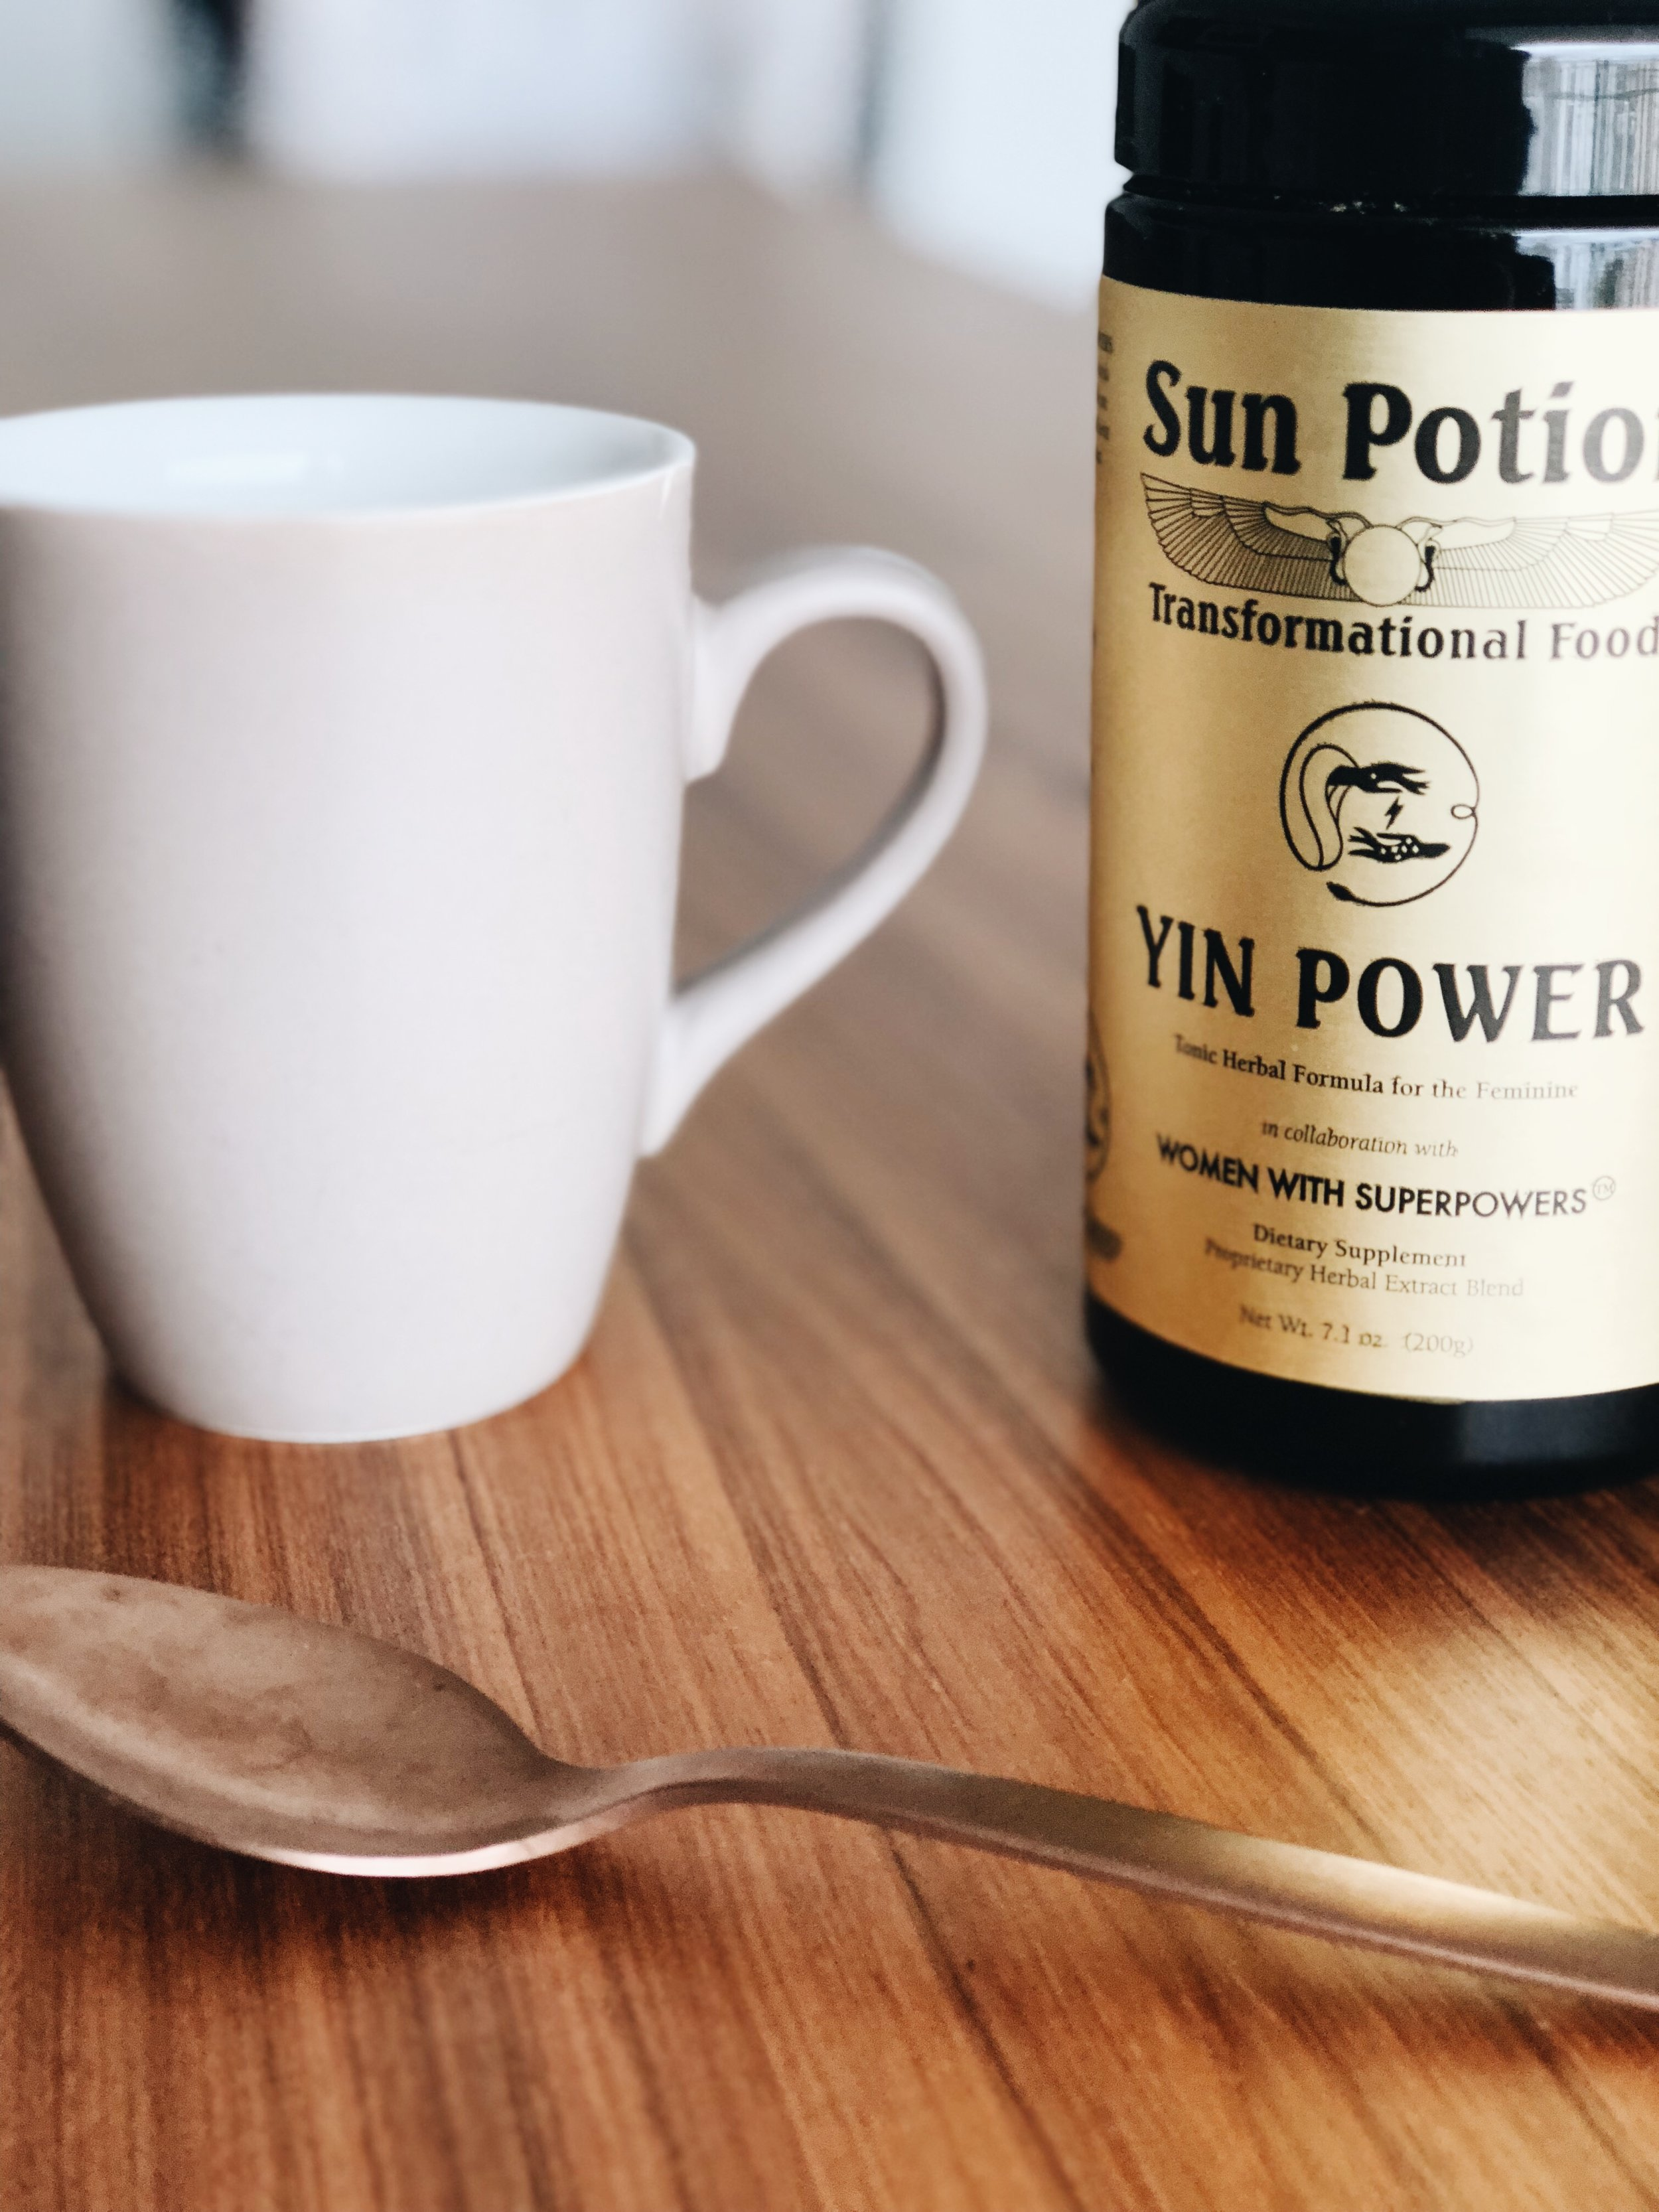 sun potion yin power - Eu tomei um adaptogen da Sun Potion por 3 meses